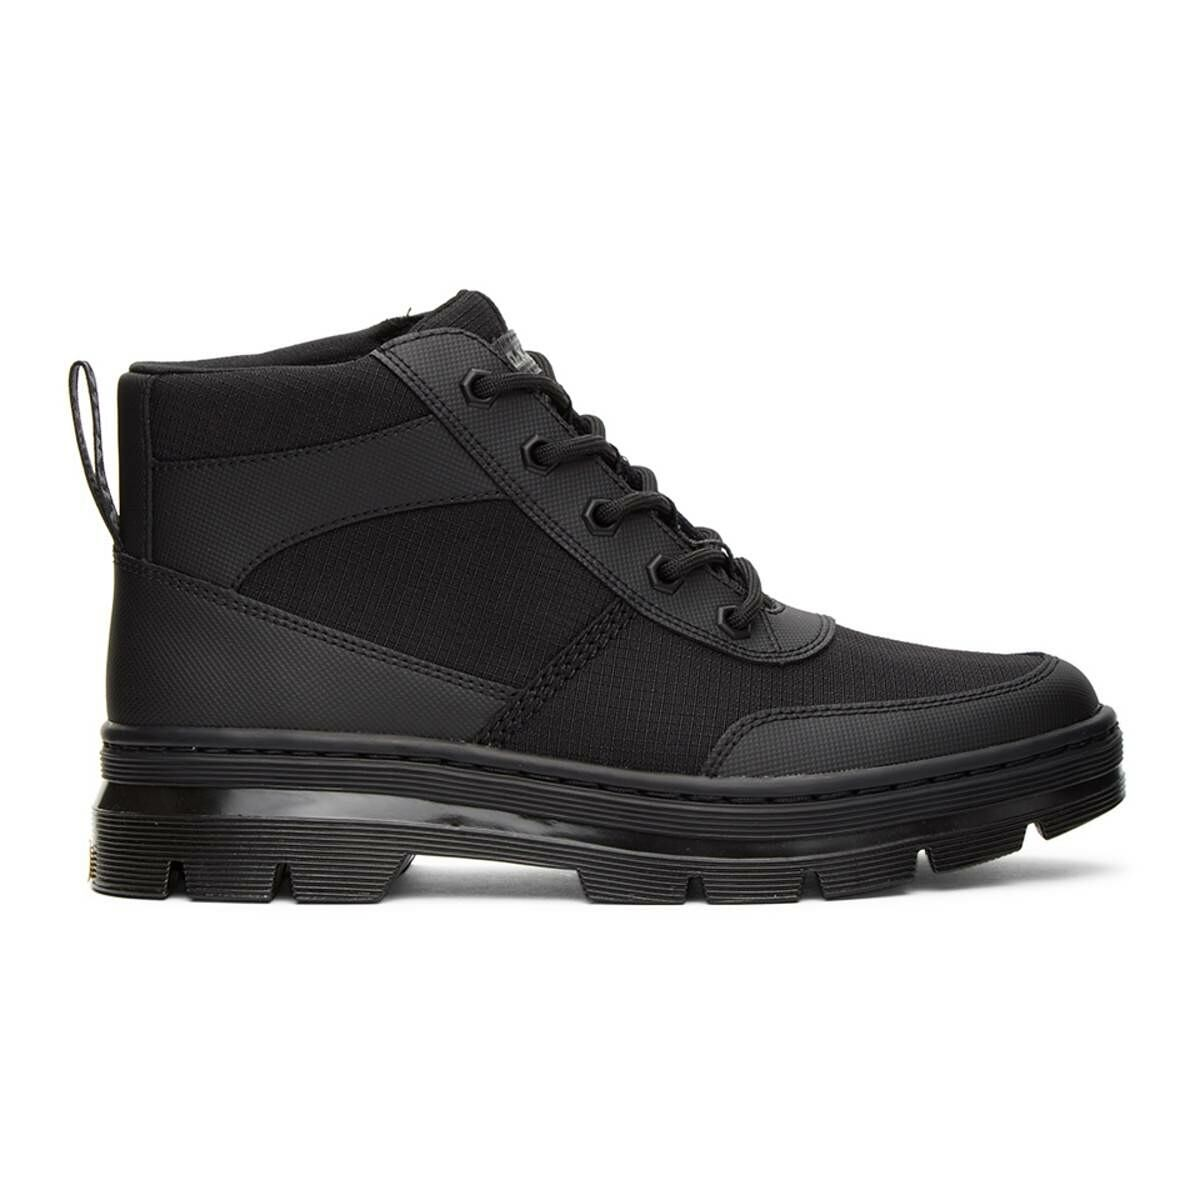 Dr. Martens Black Bonny Tech Boots Ssense USA MEN Men SHOES Mens BOOTS